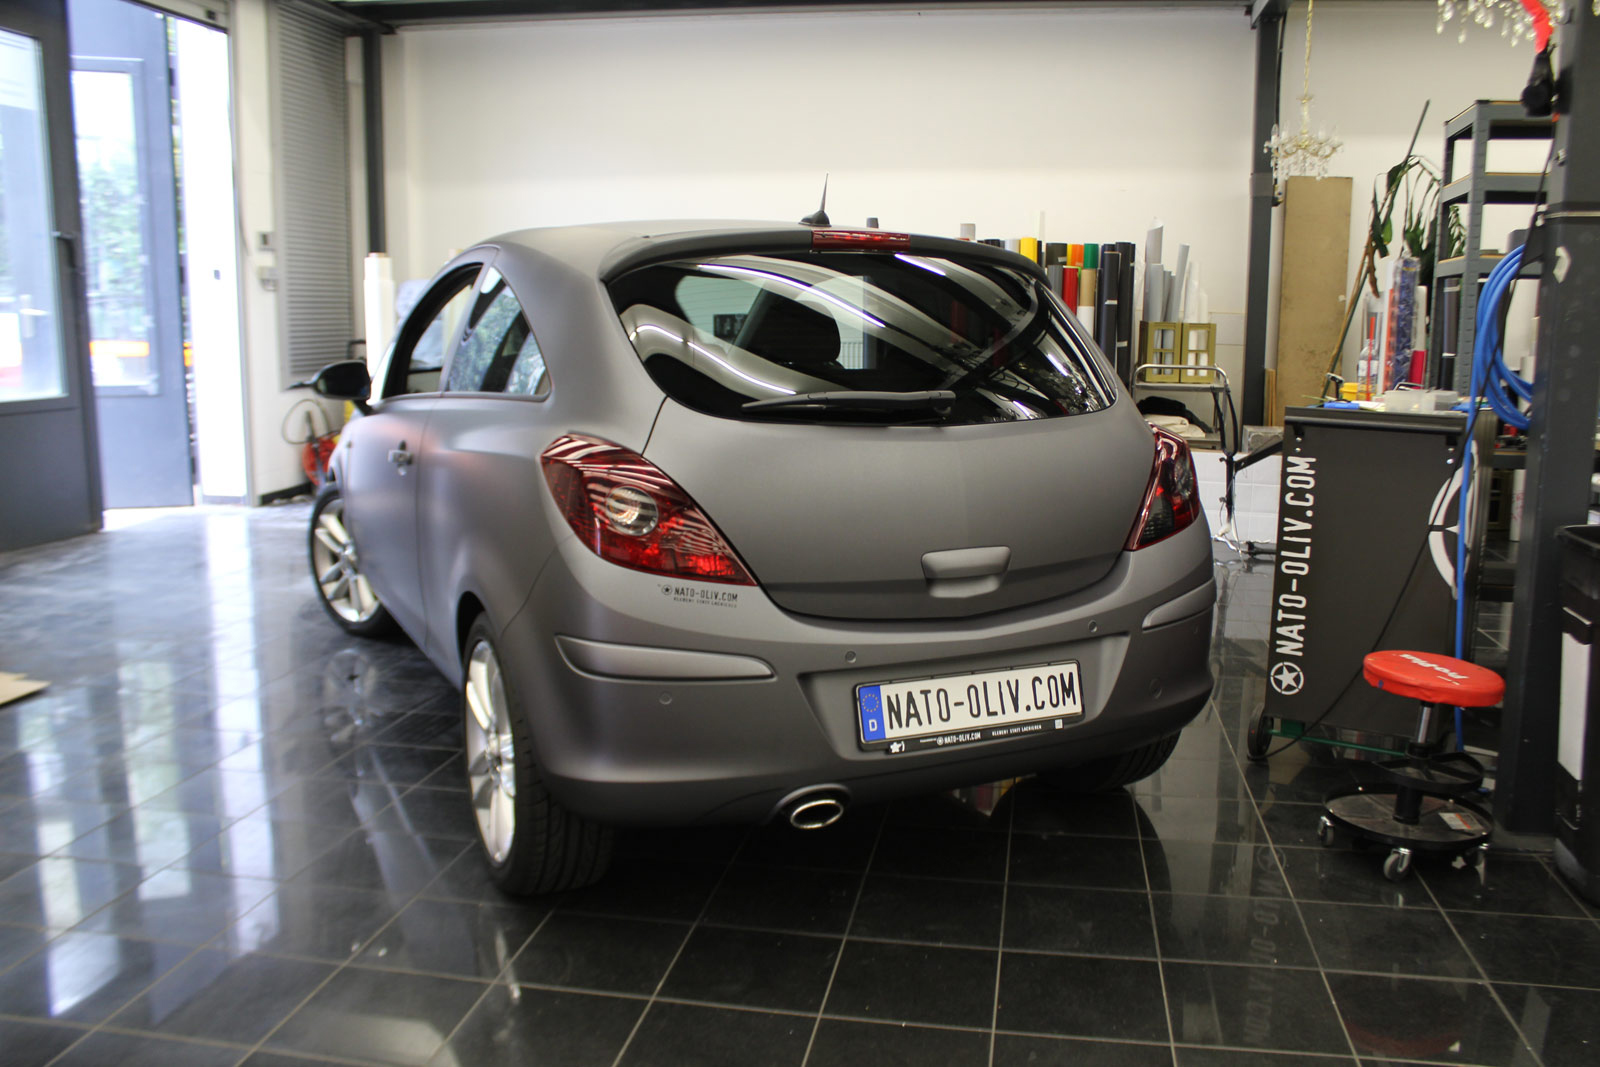 OPEL_CORSA_ANTHRAZIT_MATT_METALLIC_EXTRAS_CARBON_11